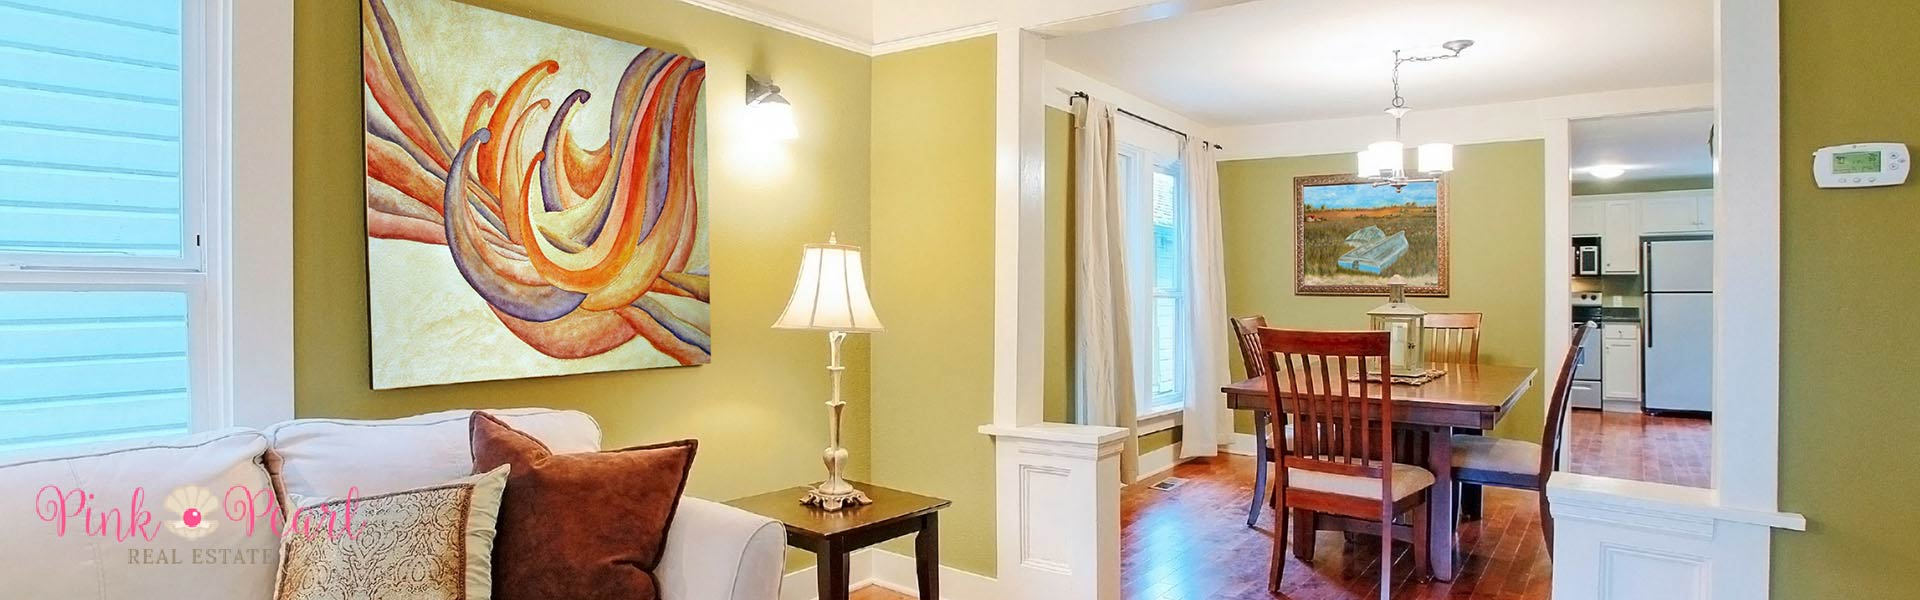 Get Your Staging Right With Pink Pearl Real Estate